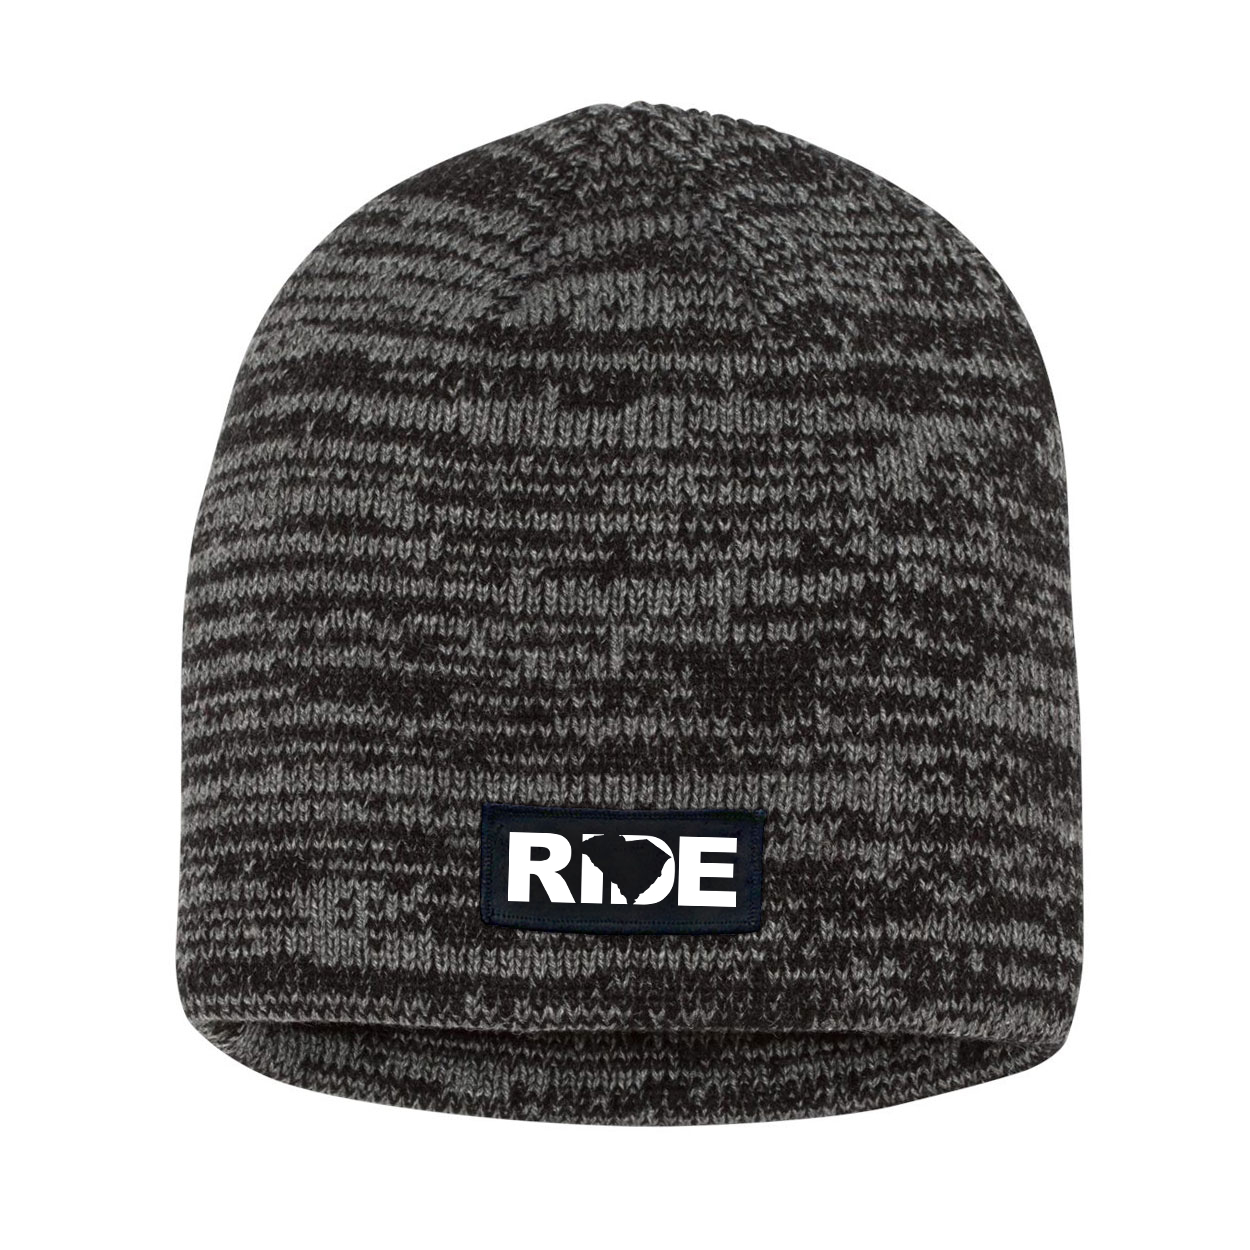 Ride South Carolina Night Out Woven Patch Skully Marled Knit Beanie Black/Gray (White Logo)